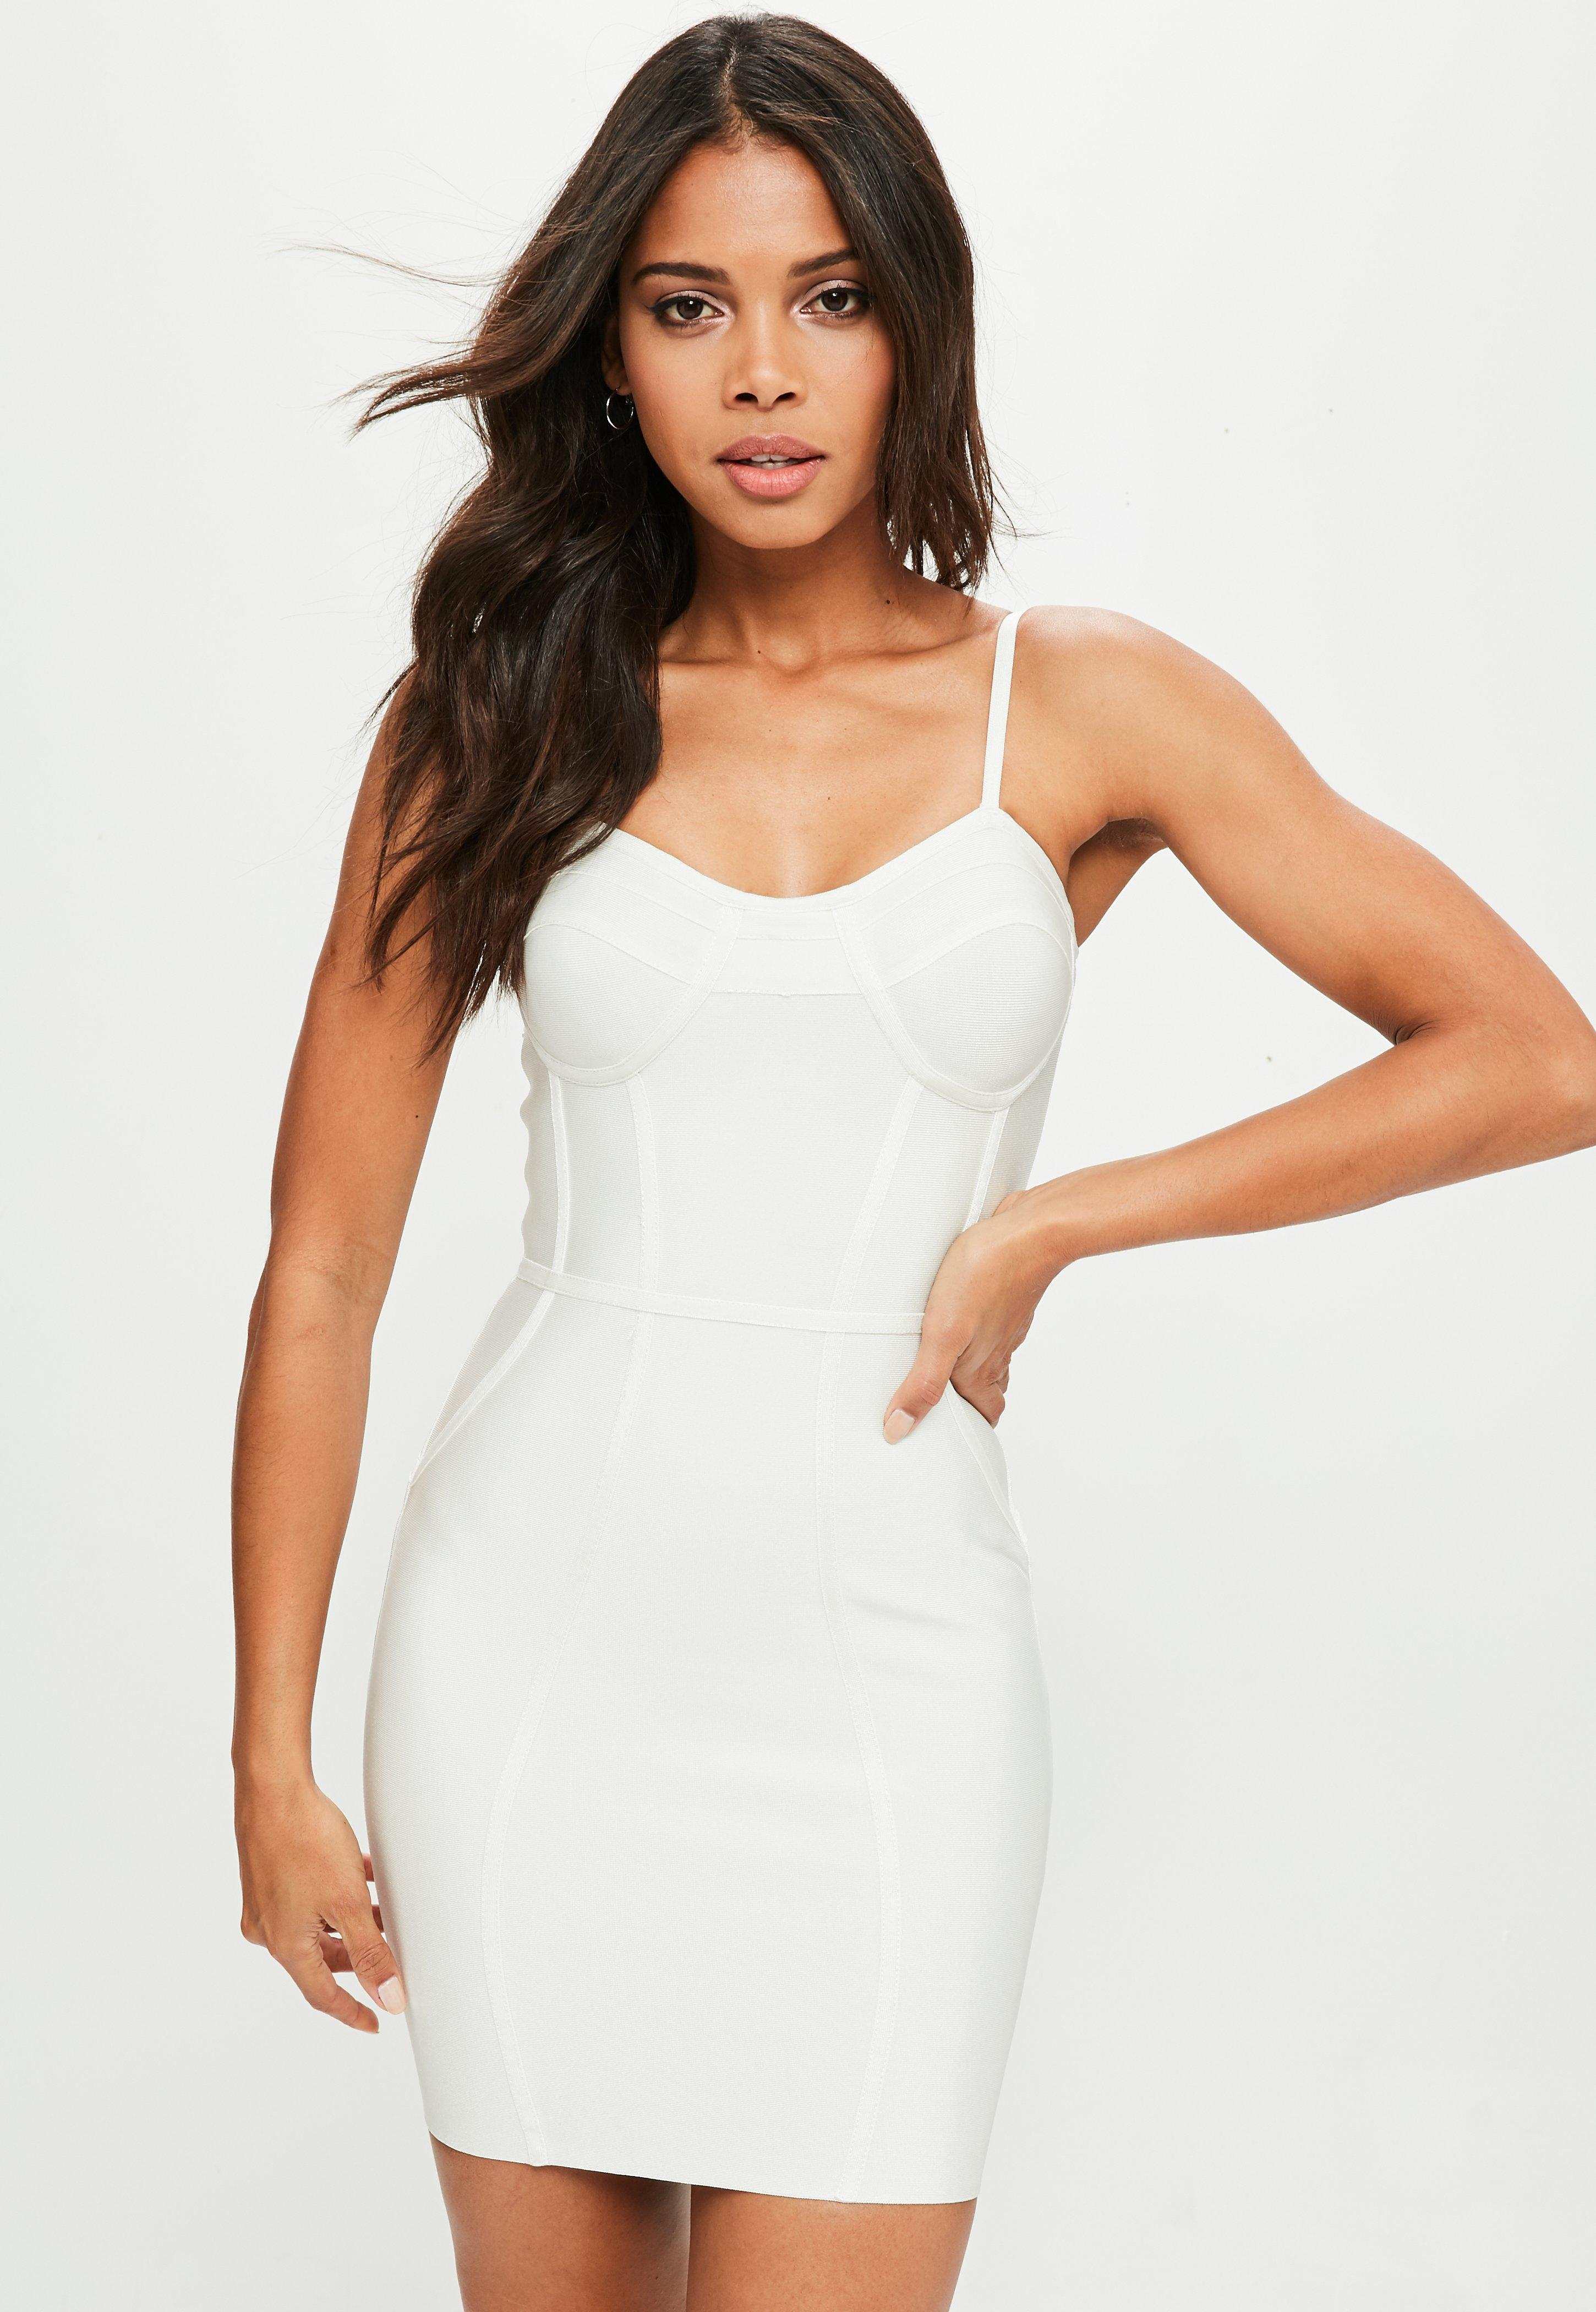 mr k flirt bandage dress Look sexy with forplay's huge selection of little black dresses free shipping.